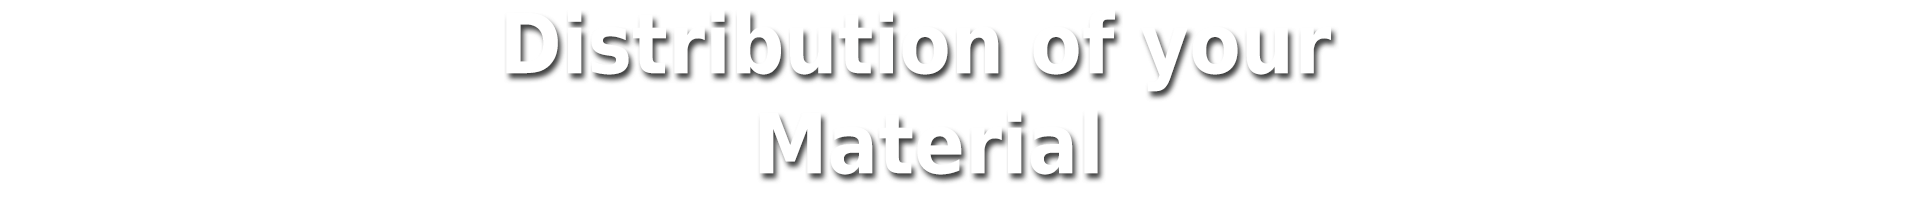 MACS Distribution of your materials title